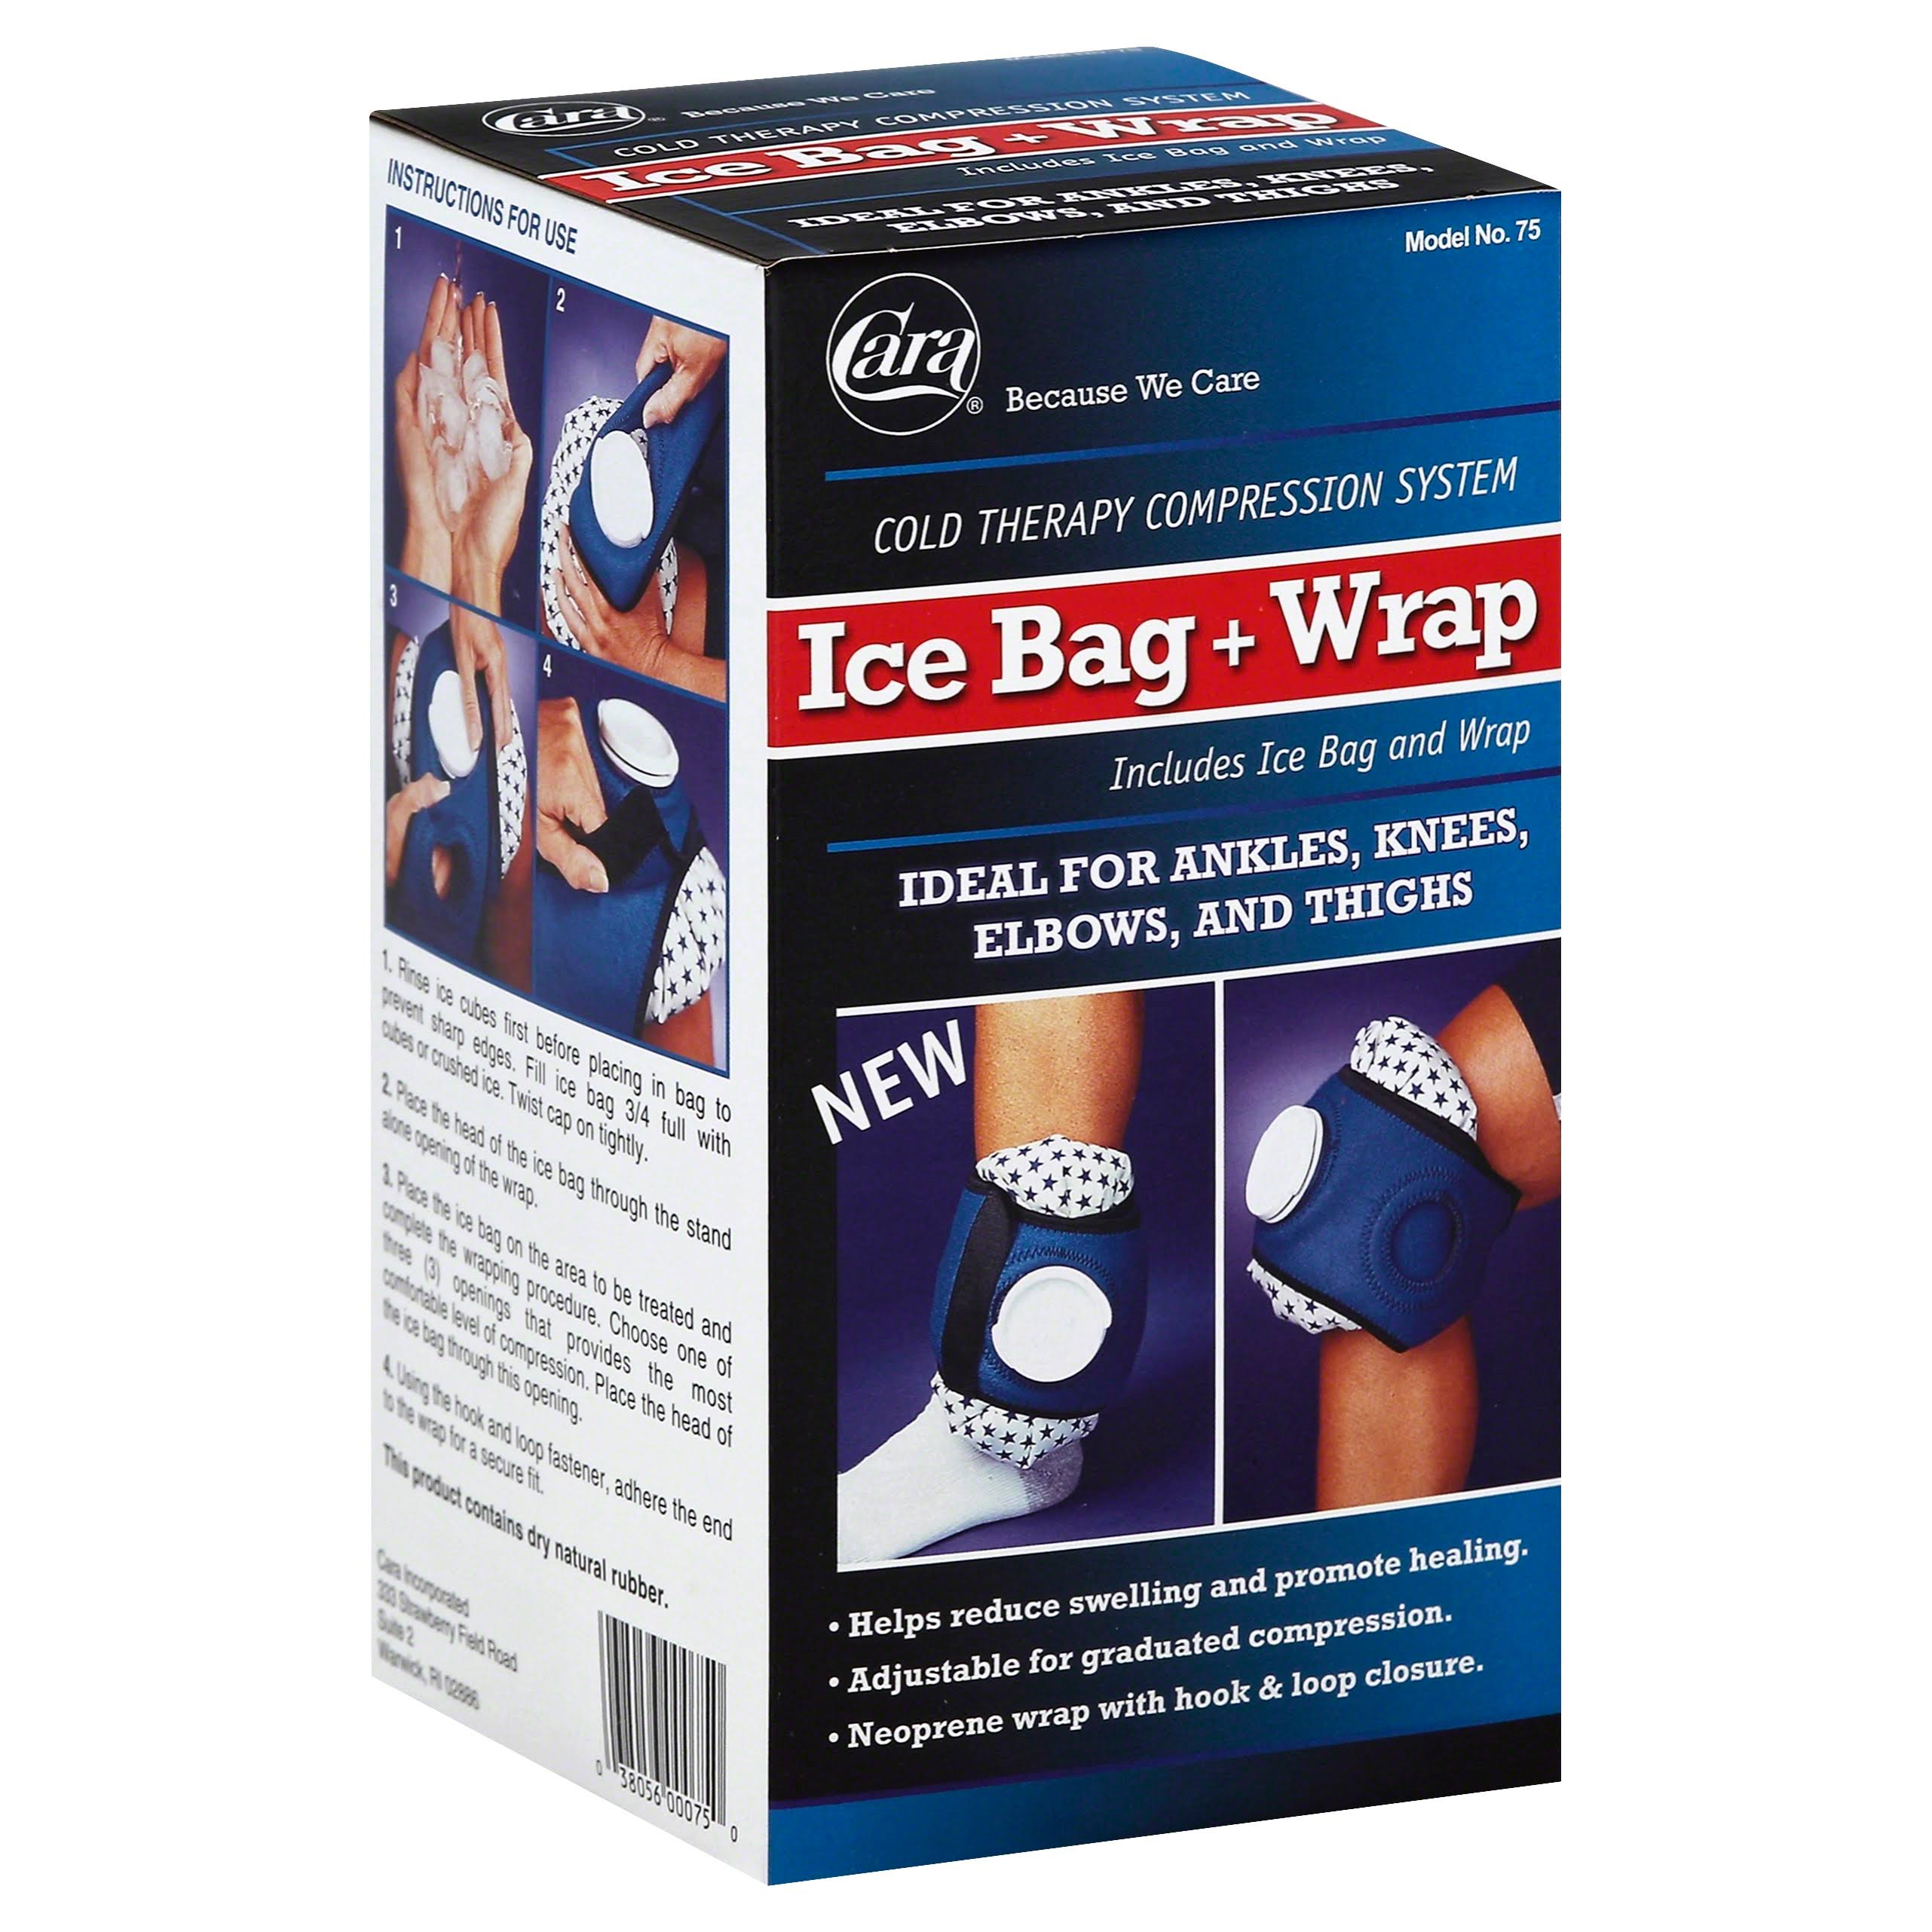 Cara Ice Bag + Wrap